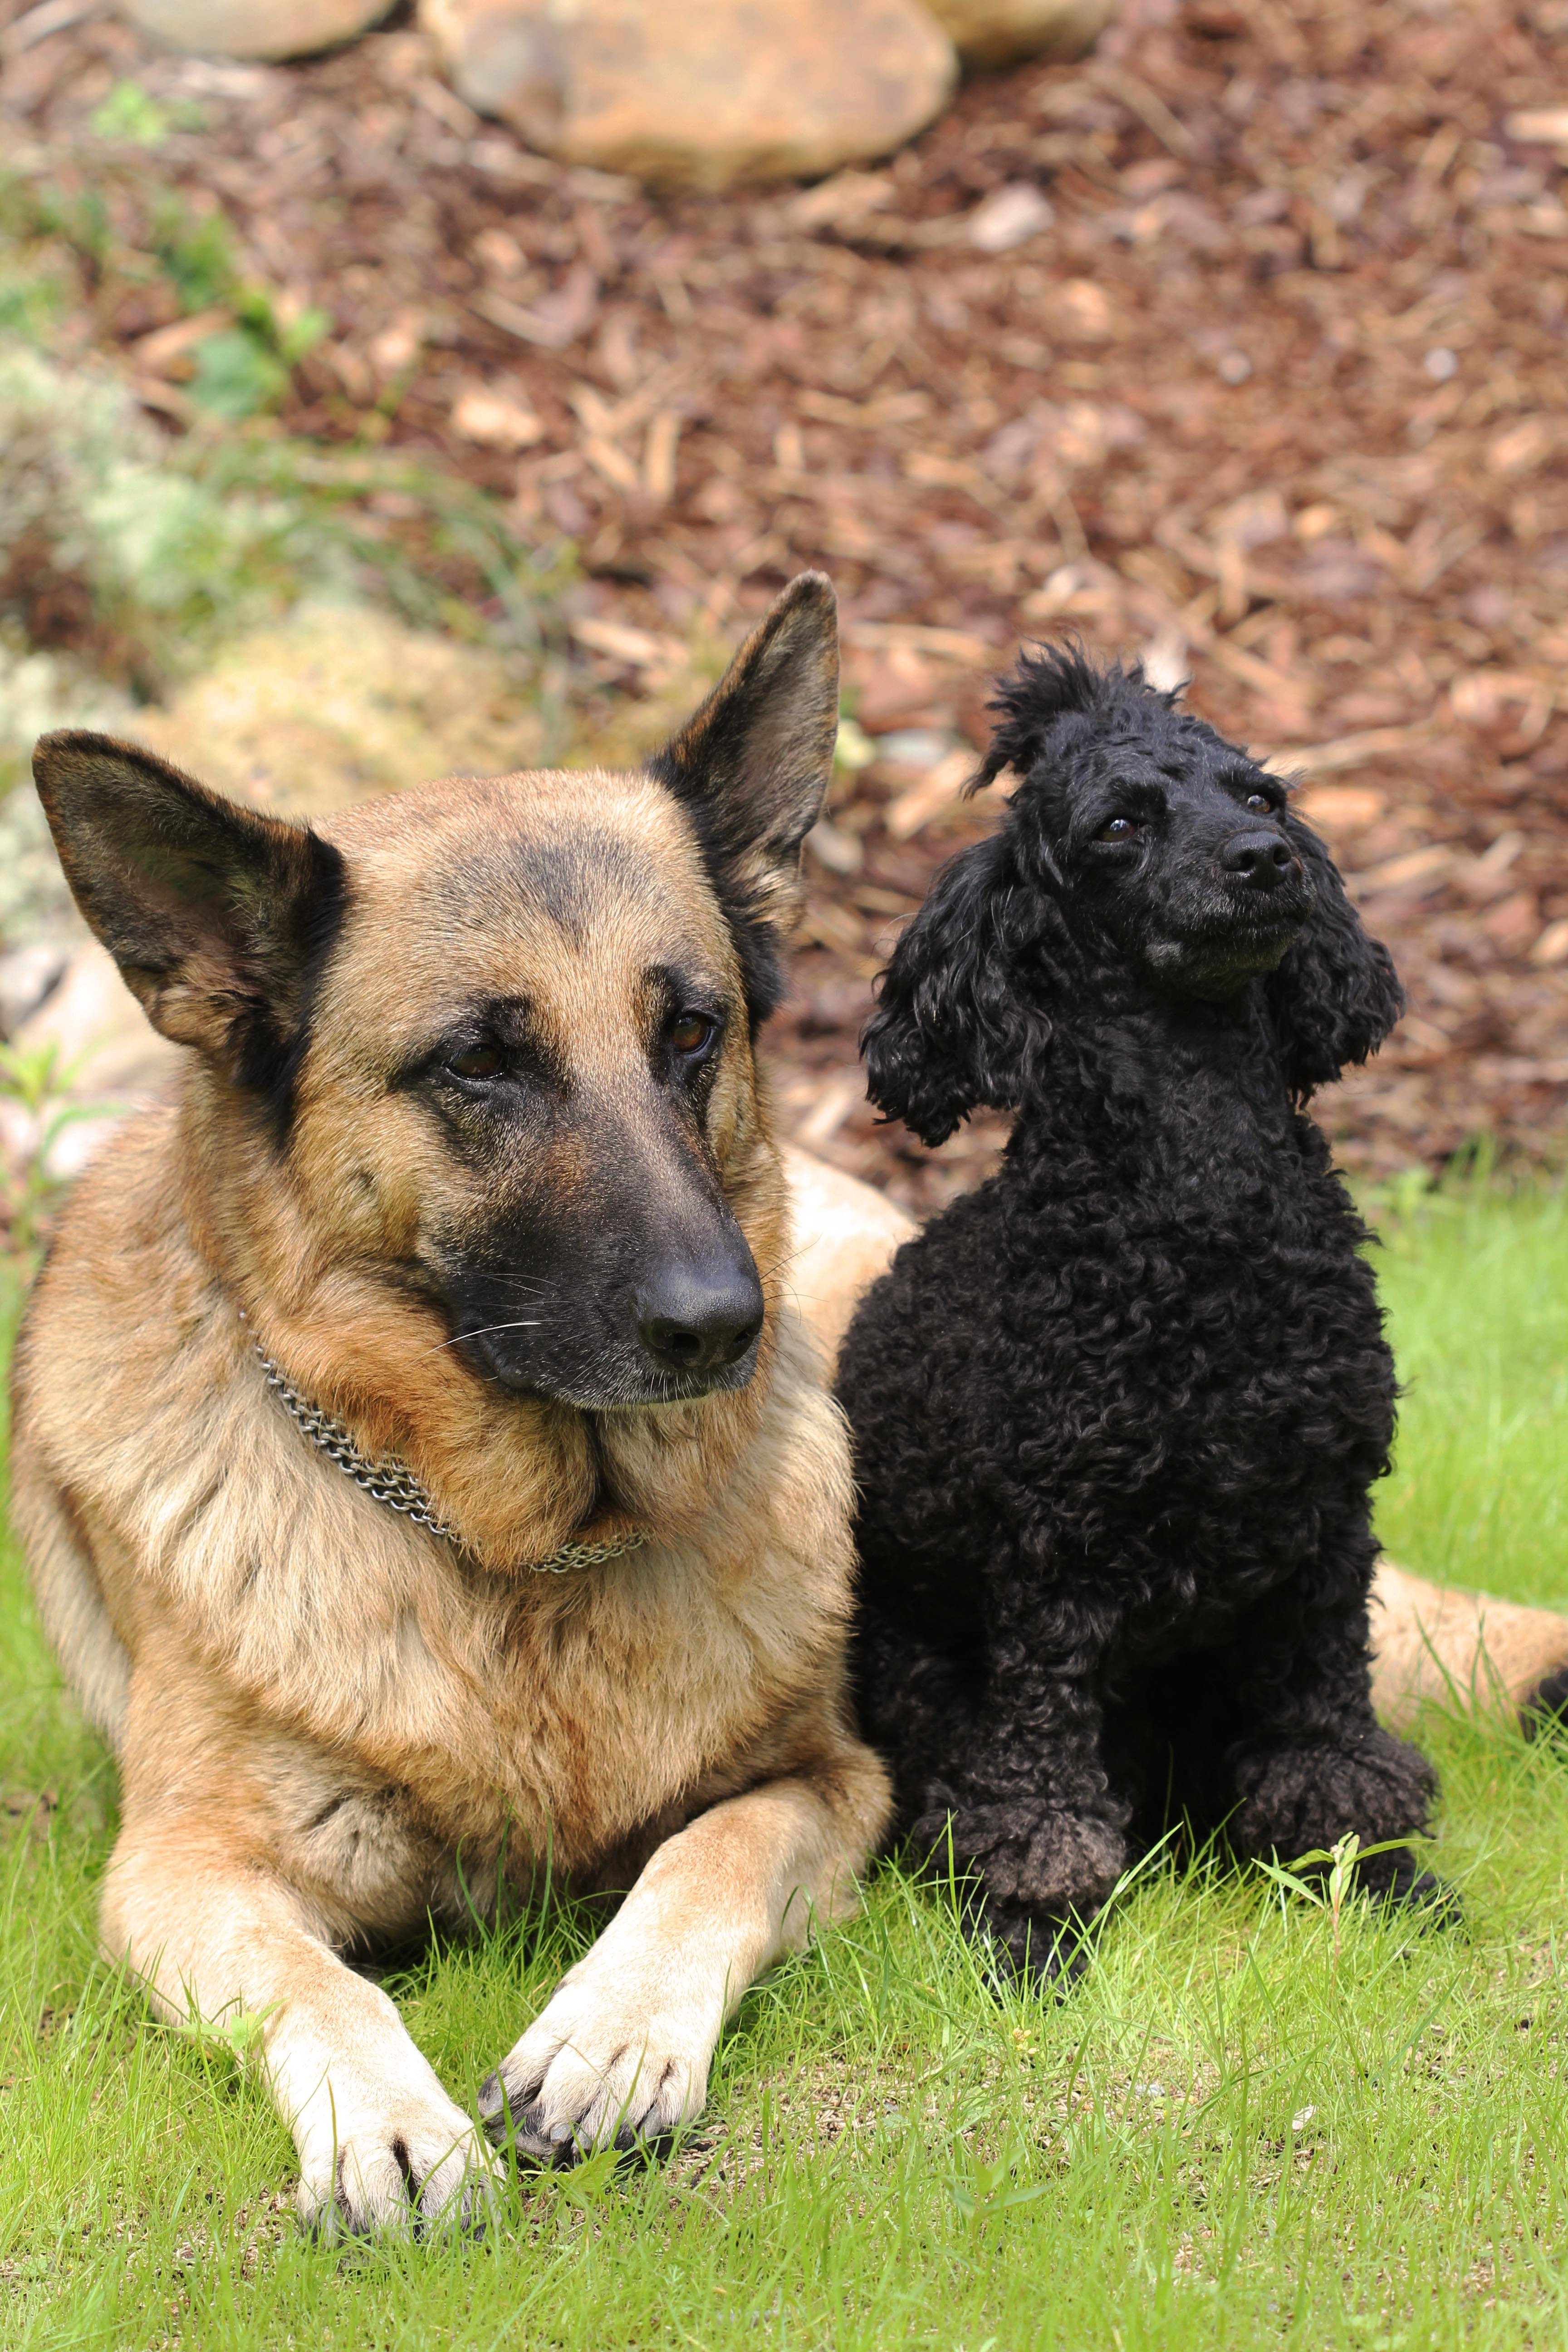 choosing to adopt a hypoallergenic dog vs a nonhypoallergenic dog